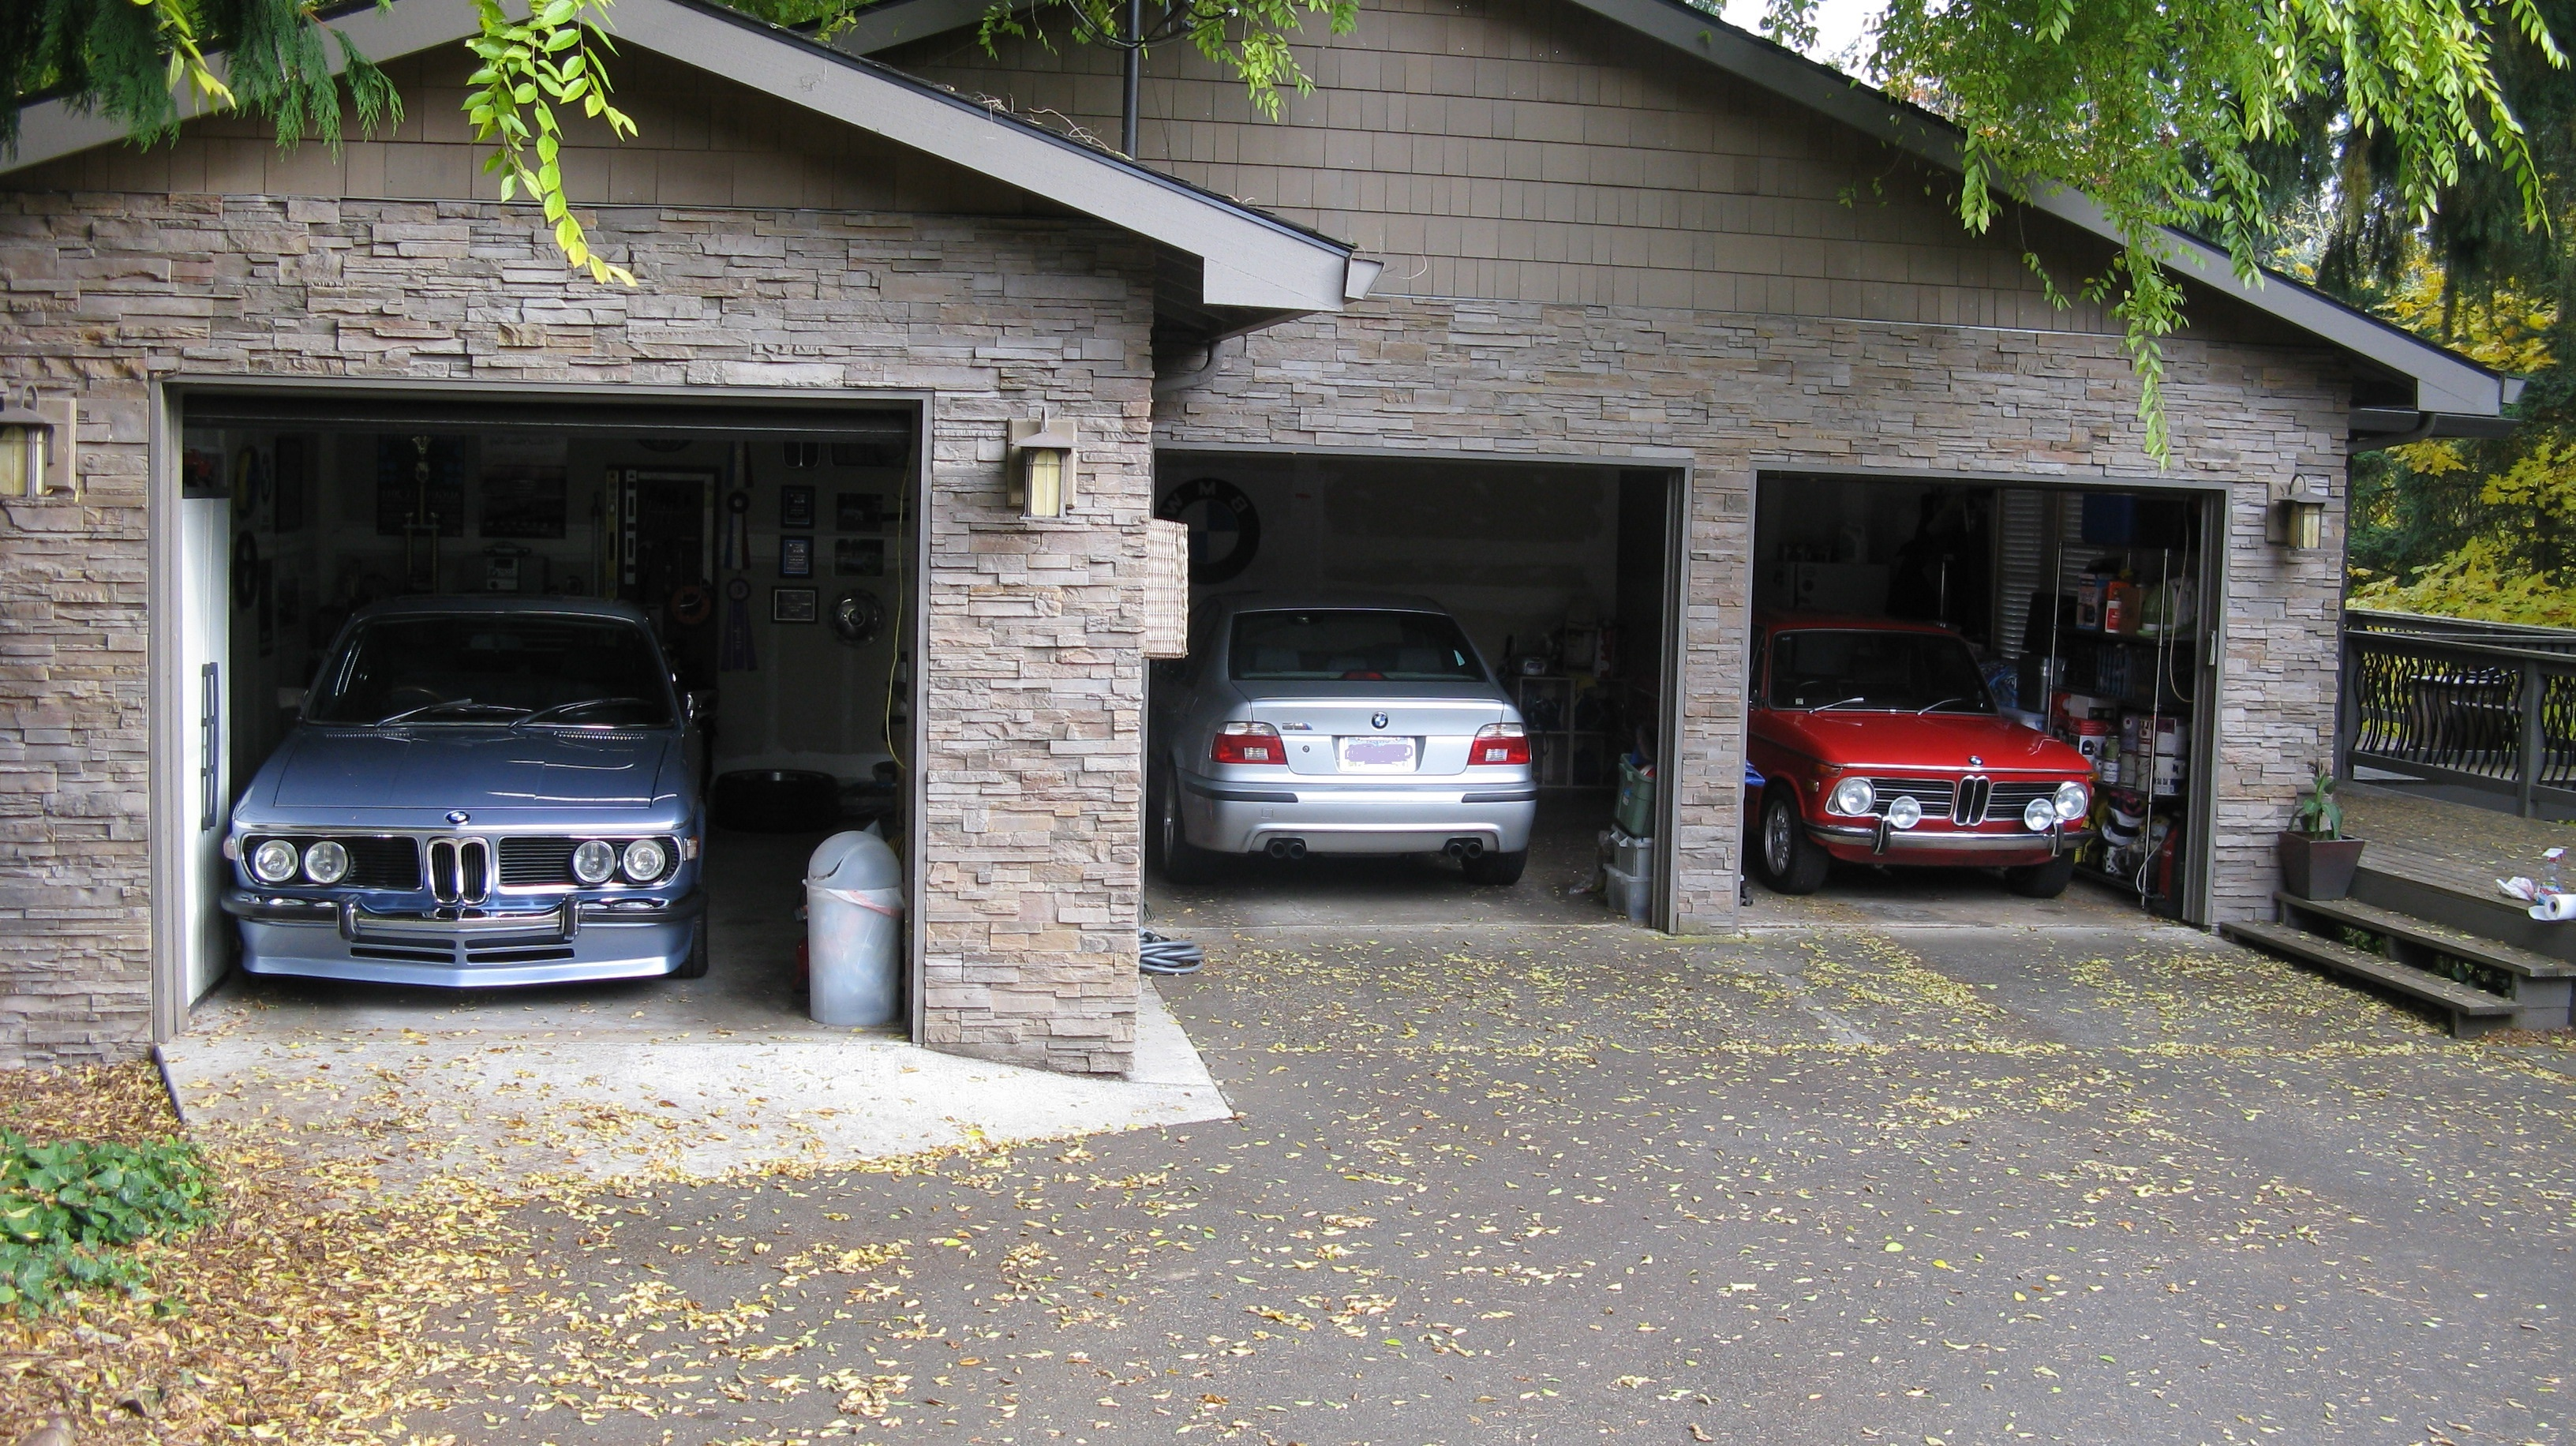 Cars and car servicing cars and car servicing for 2 5 car garage cost